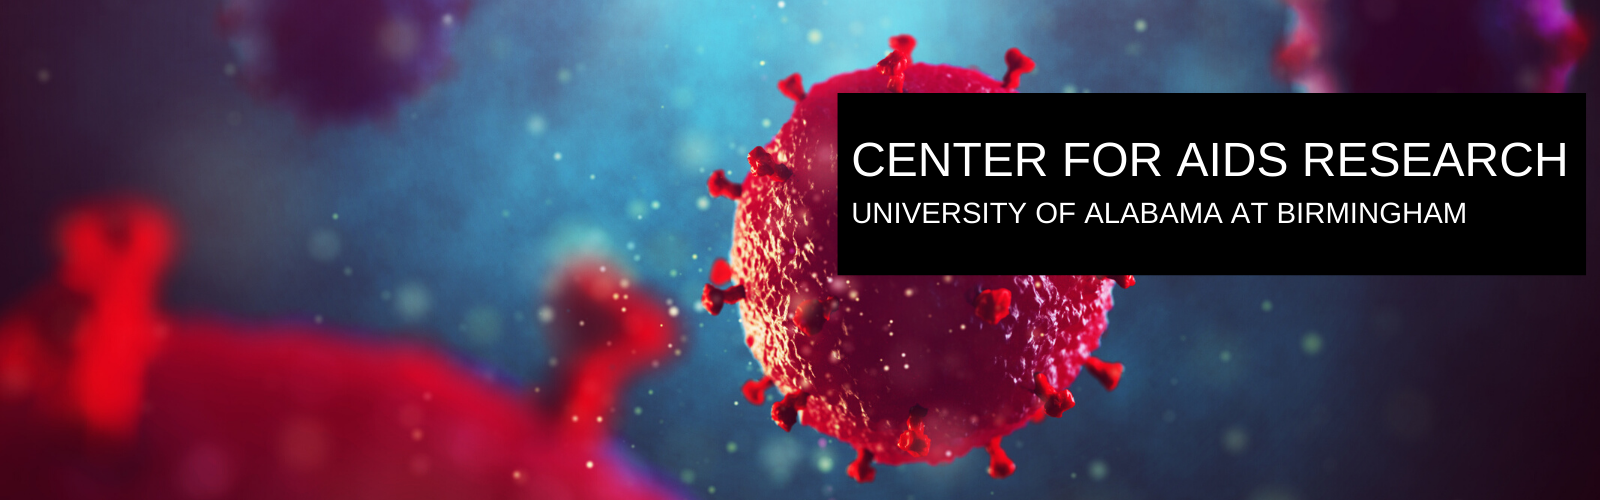 CENTER FOR AIDS RESEARCH